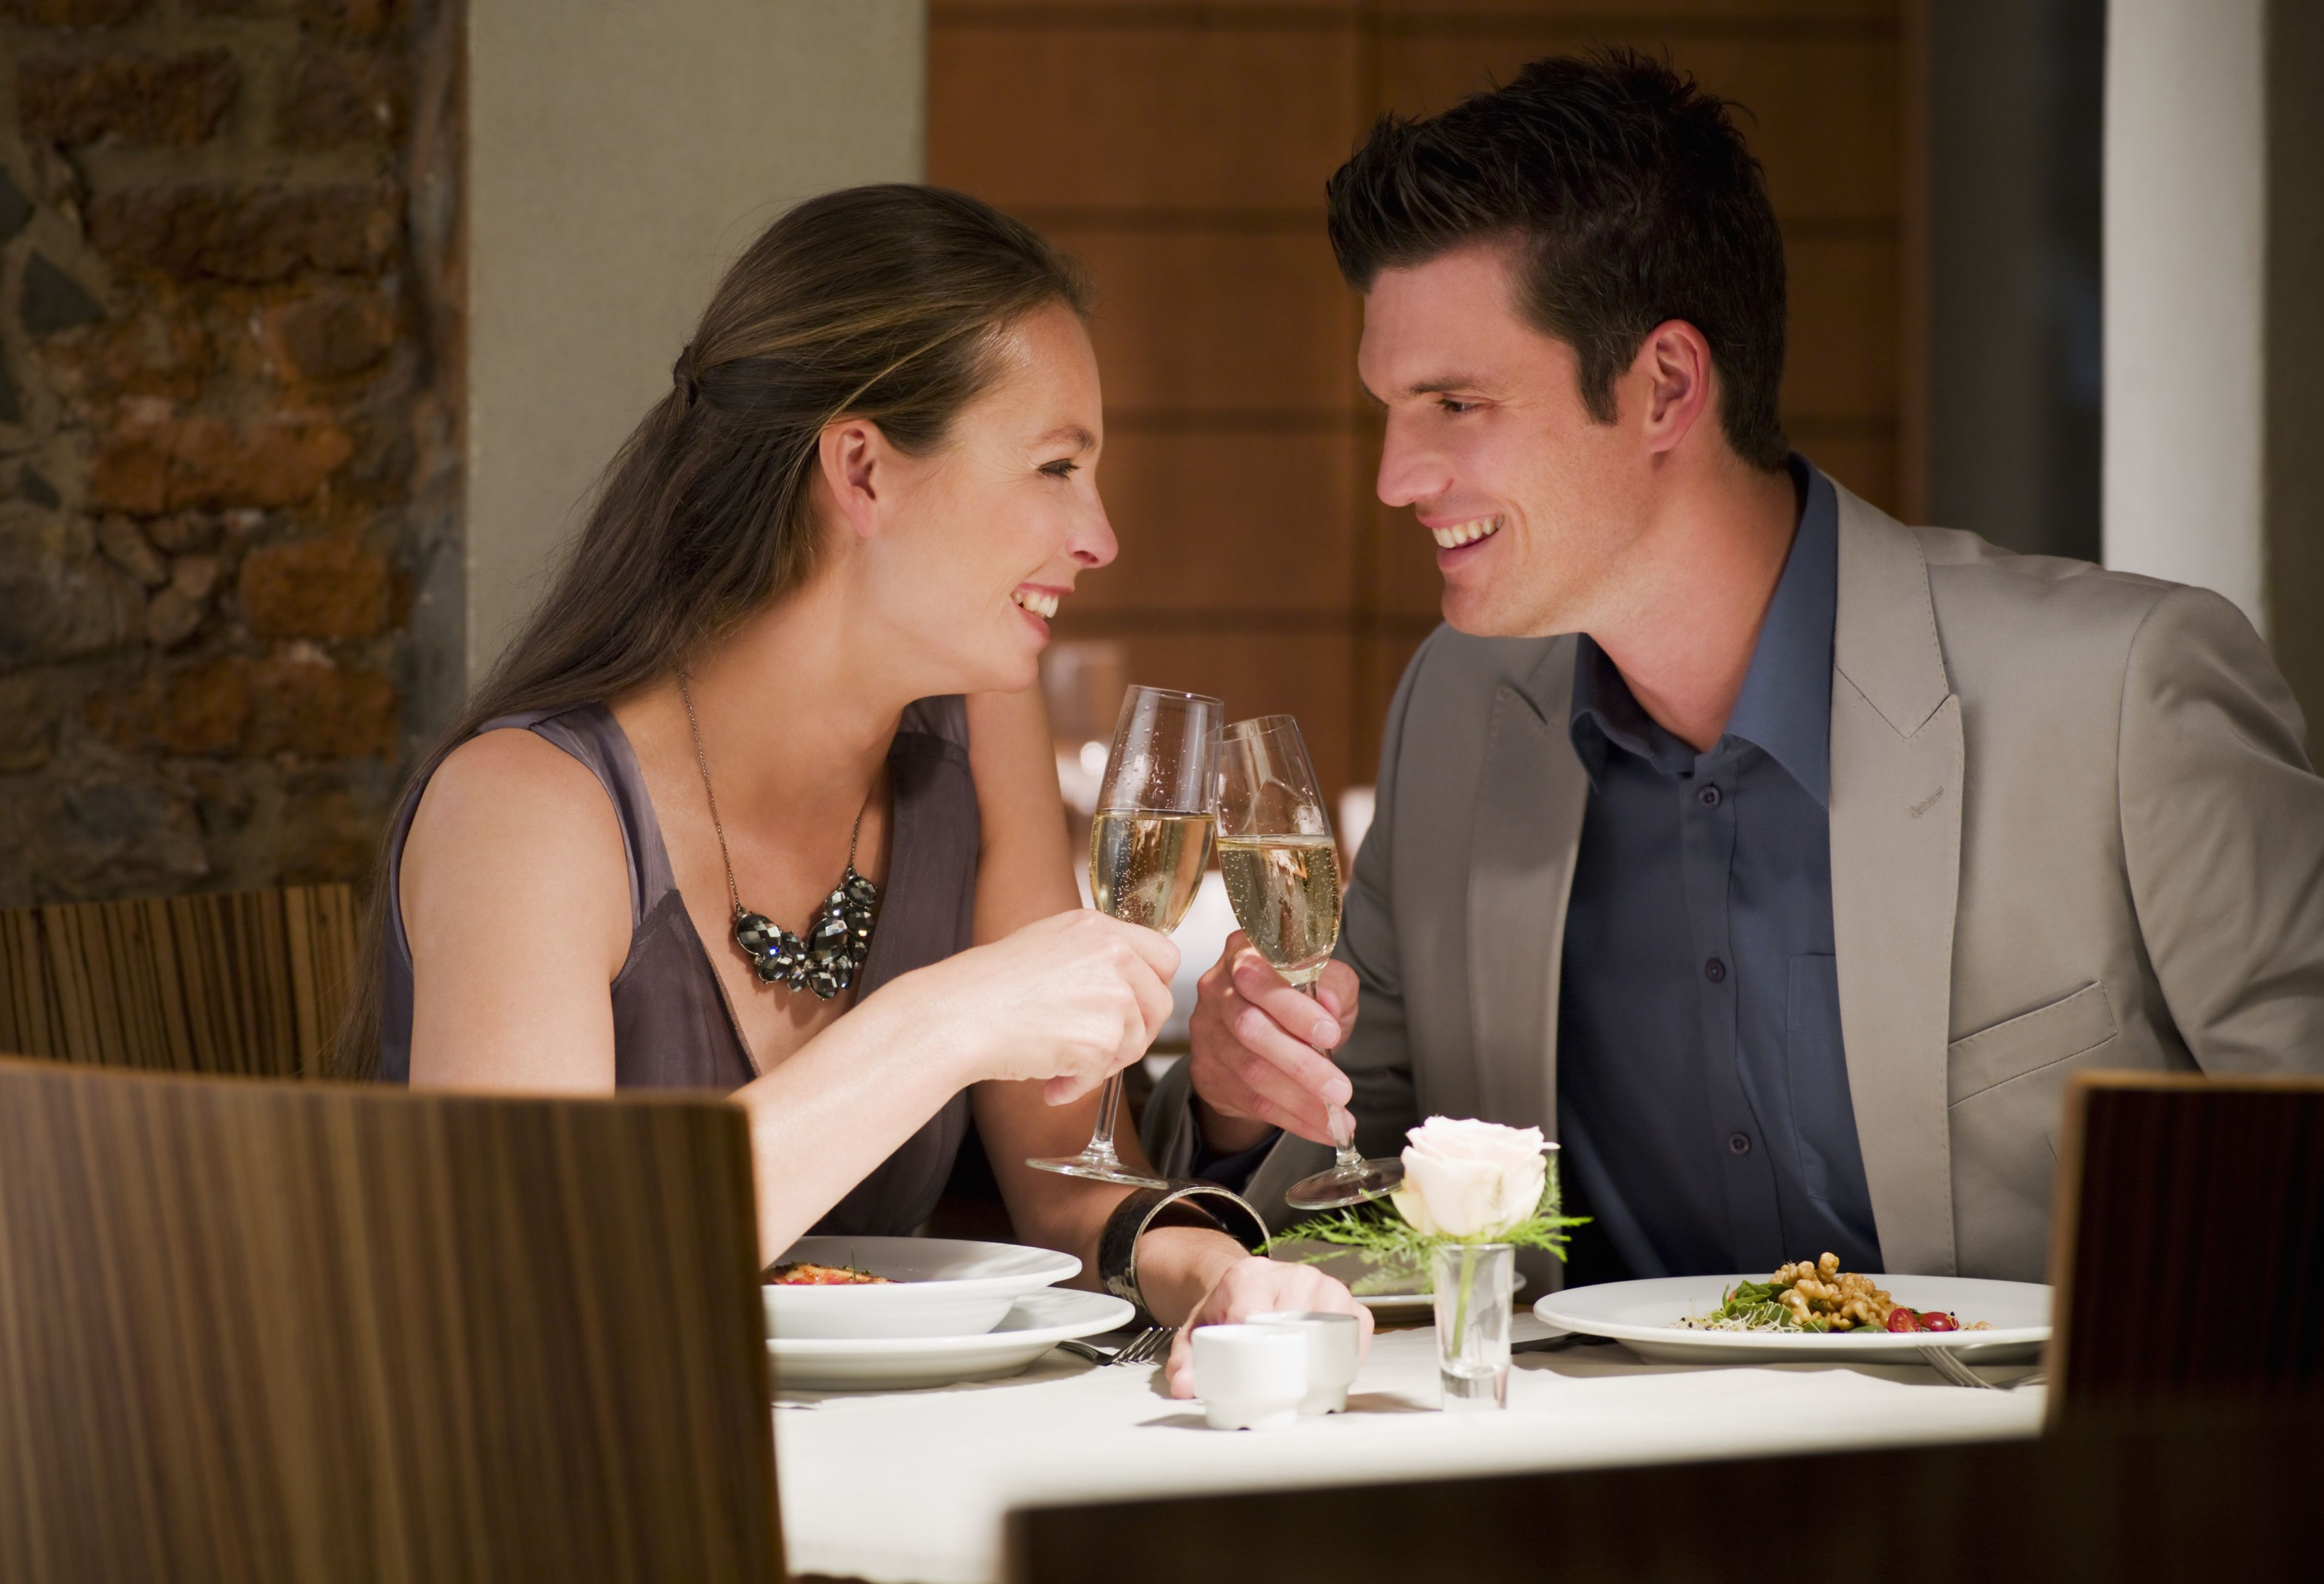 Best restaurants near the kennedy center in washington dc for Romantic places near dc